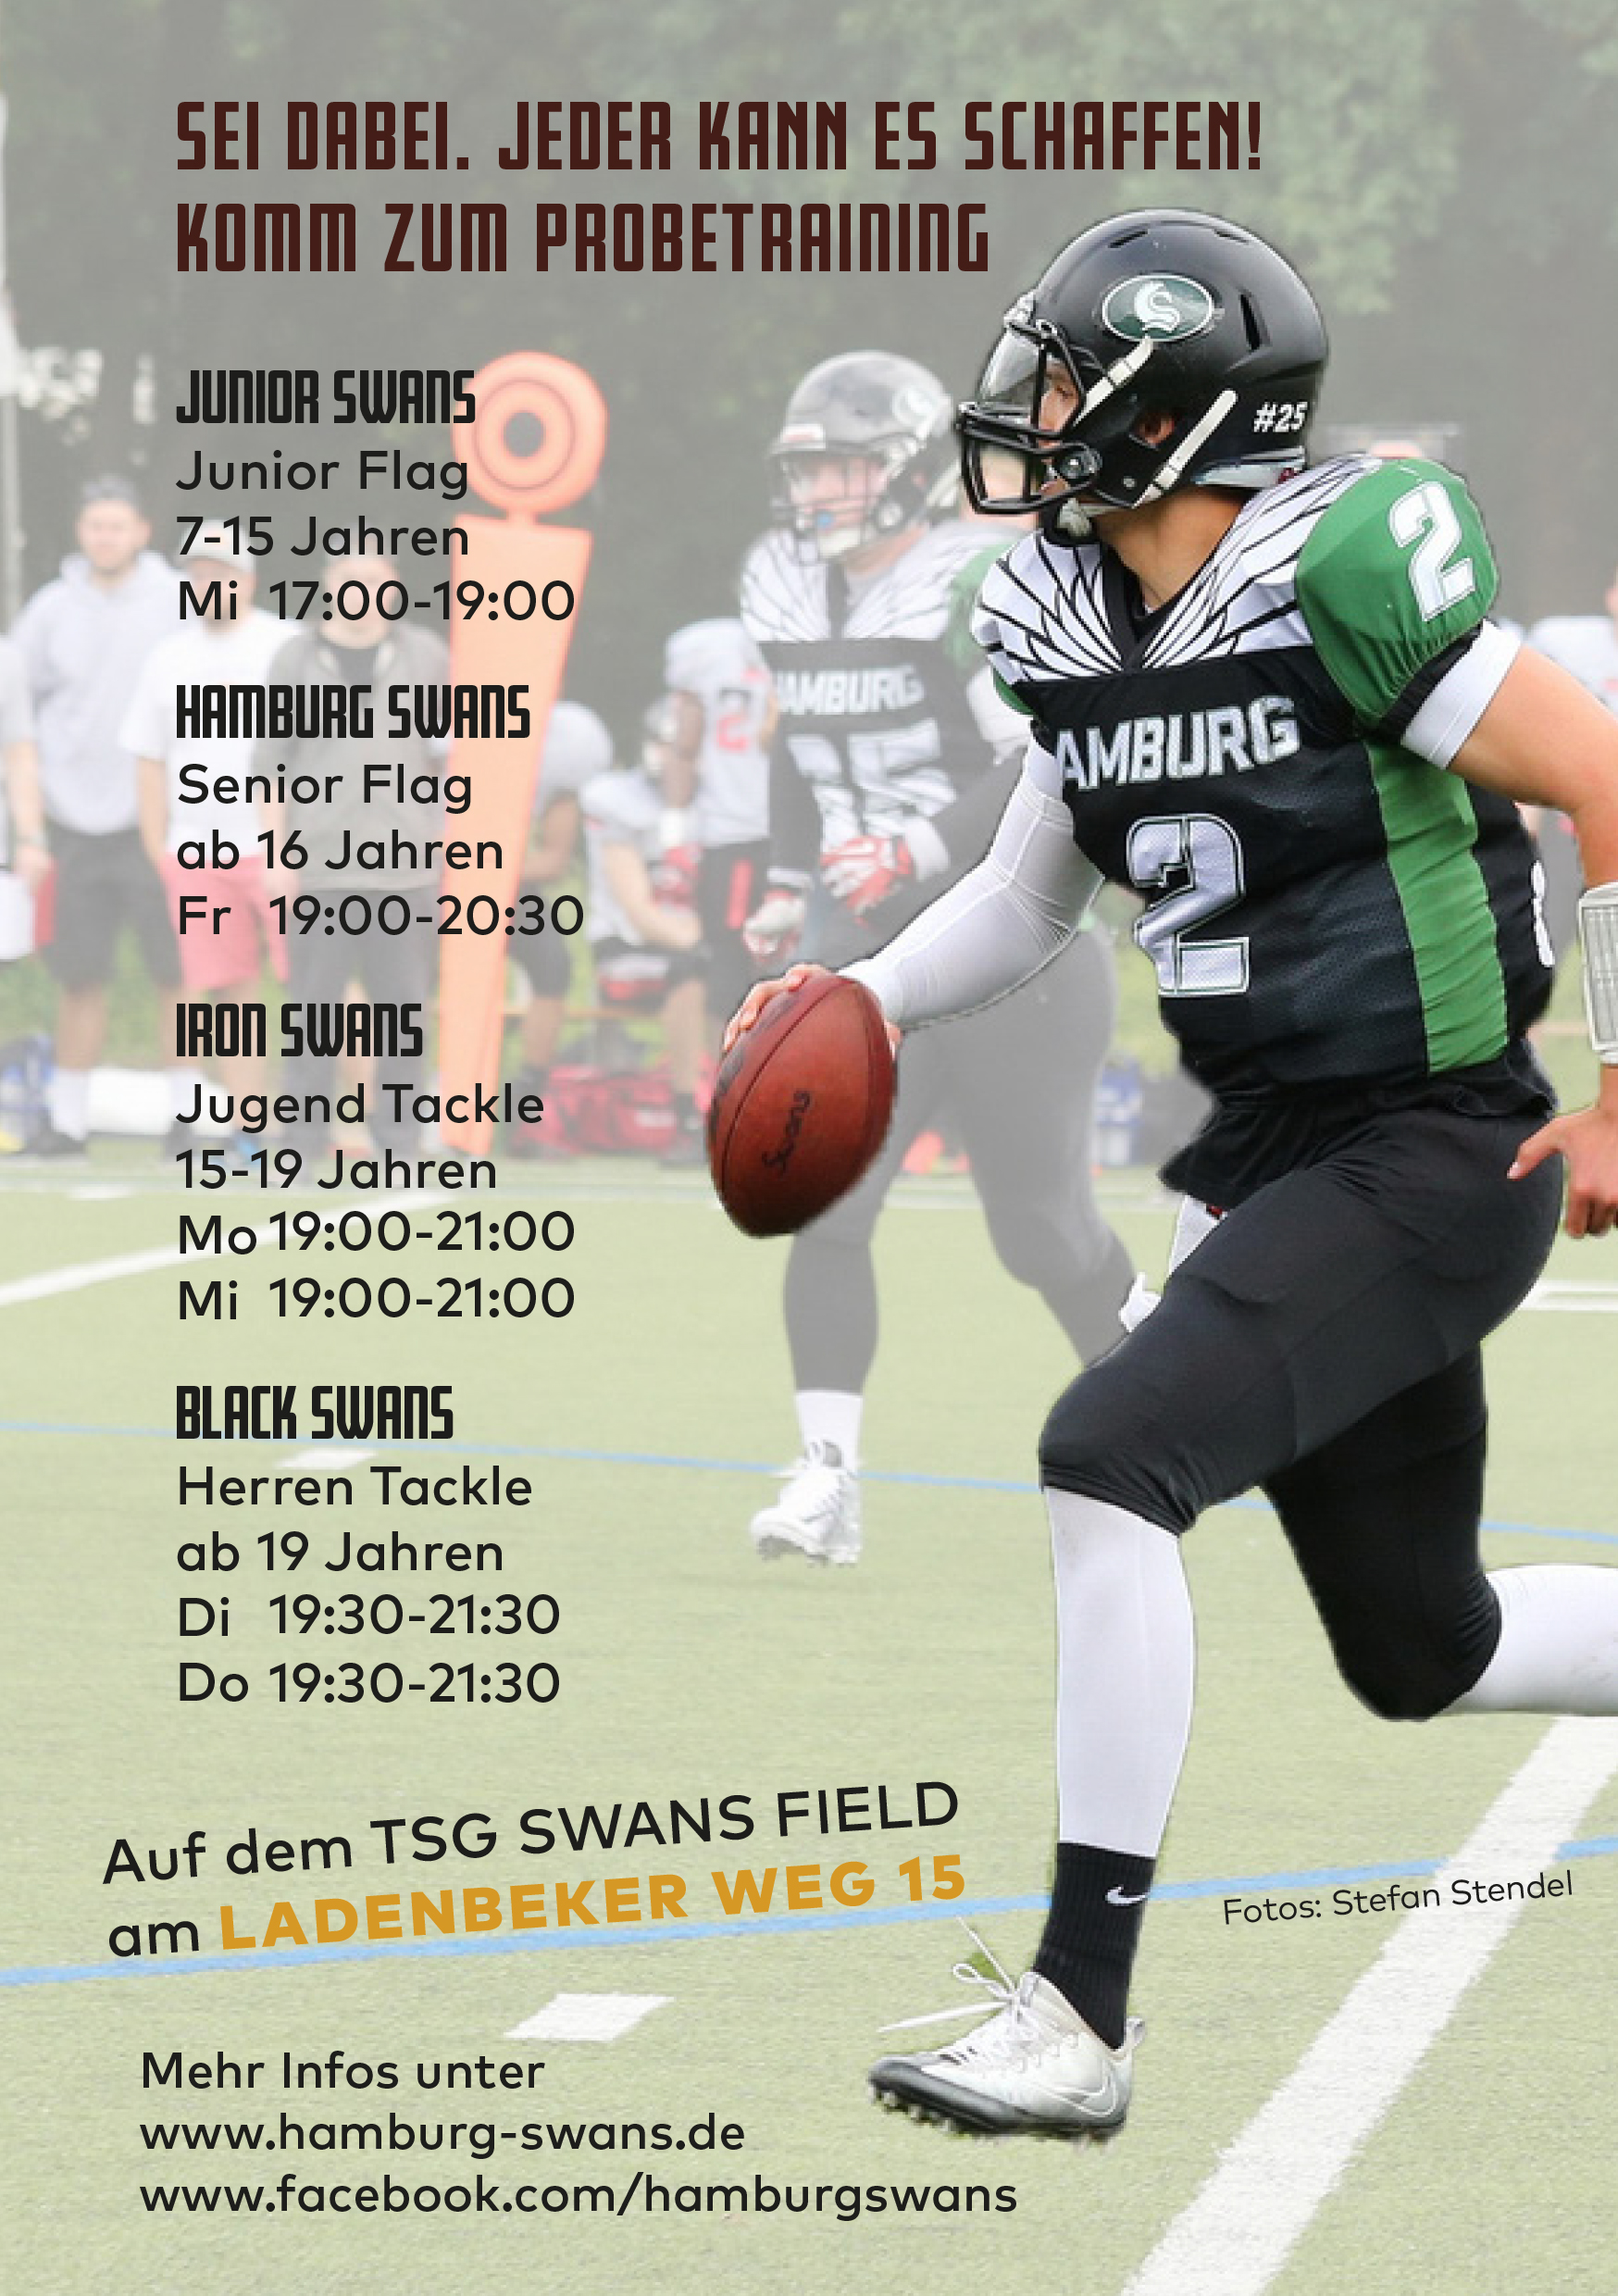 Gameday der Hamburg Swans